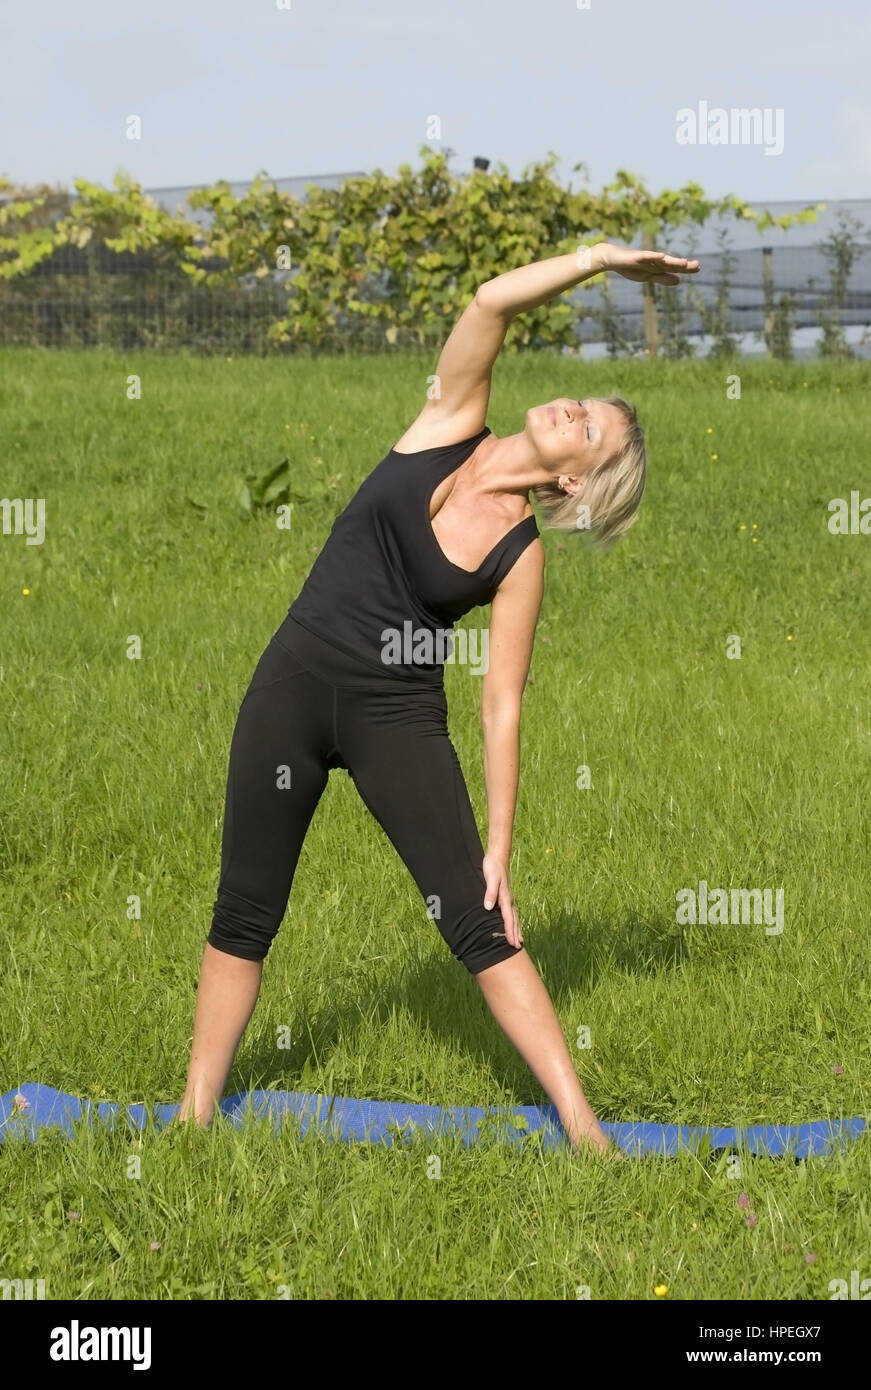 Frau beim Stretching in der Wiese - woman does stretching in meadow - Stock Image